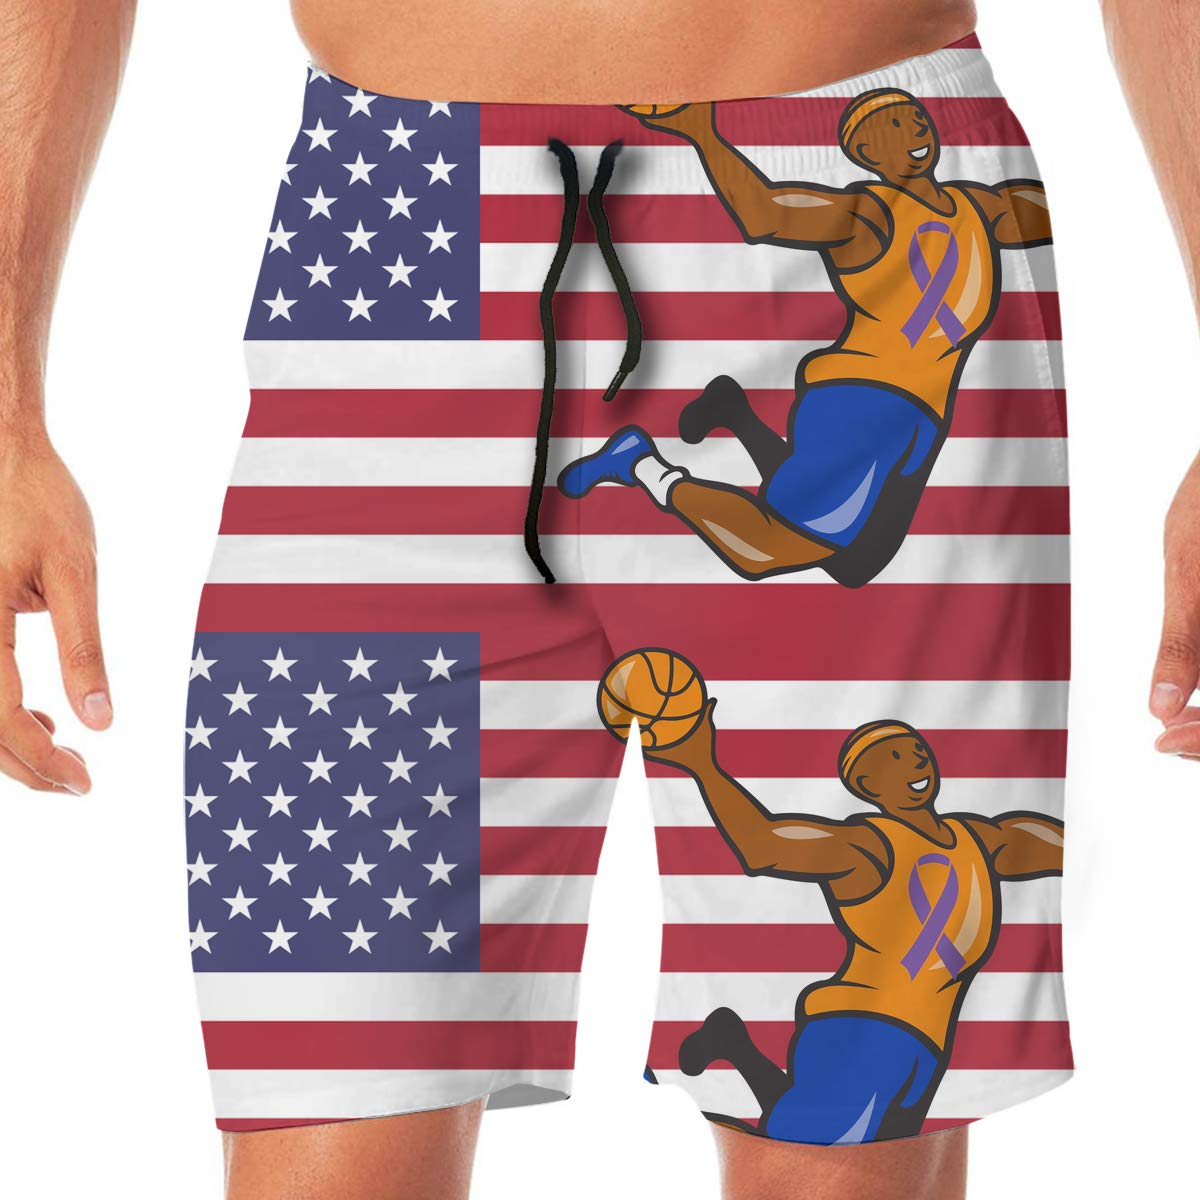 YGE.I.L25 Men Surfing Boardshorts American Alleyoop Basketball Cancer Awareness Casual Sport Beach Boardshort with Pocket